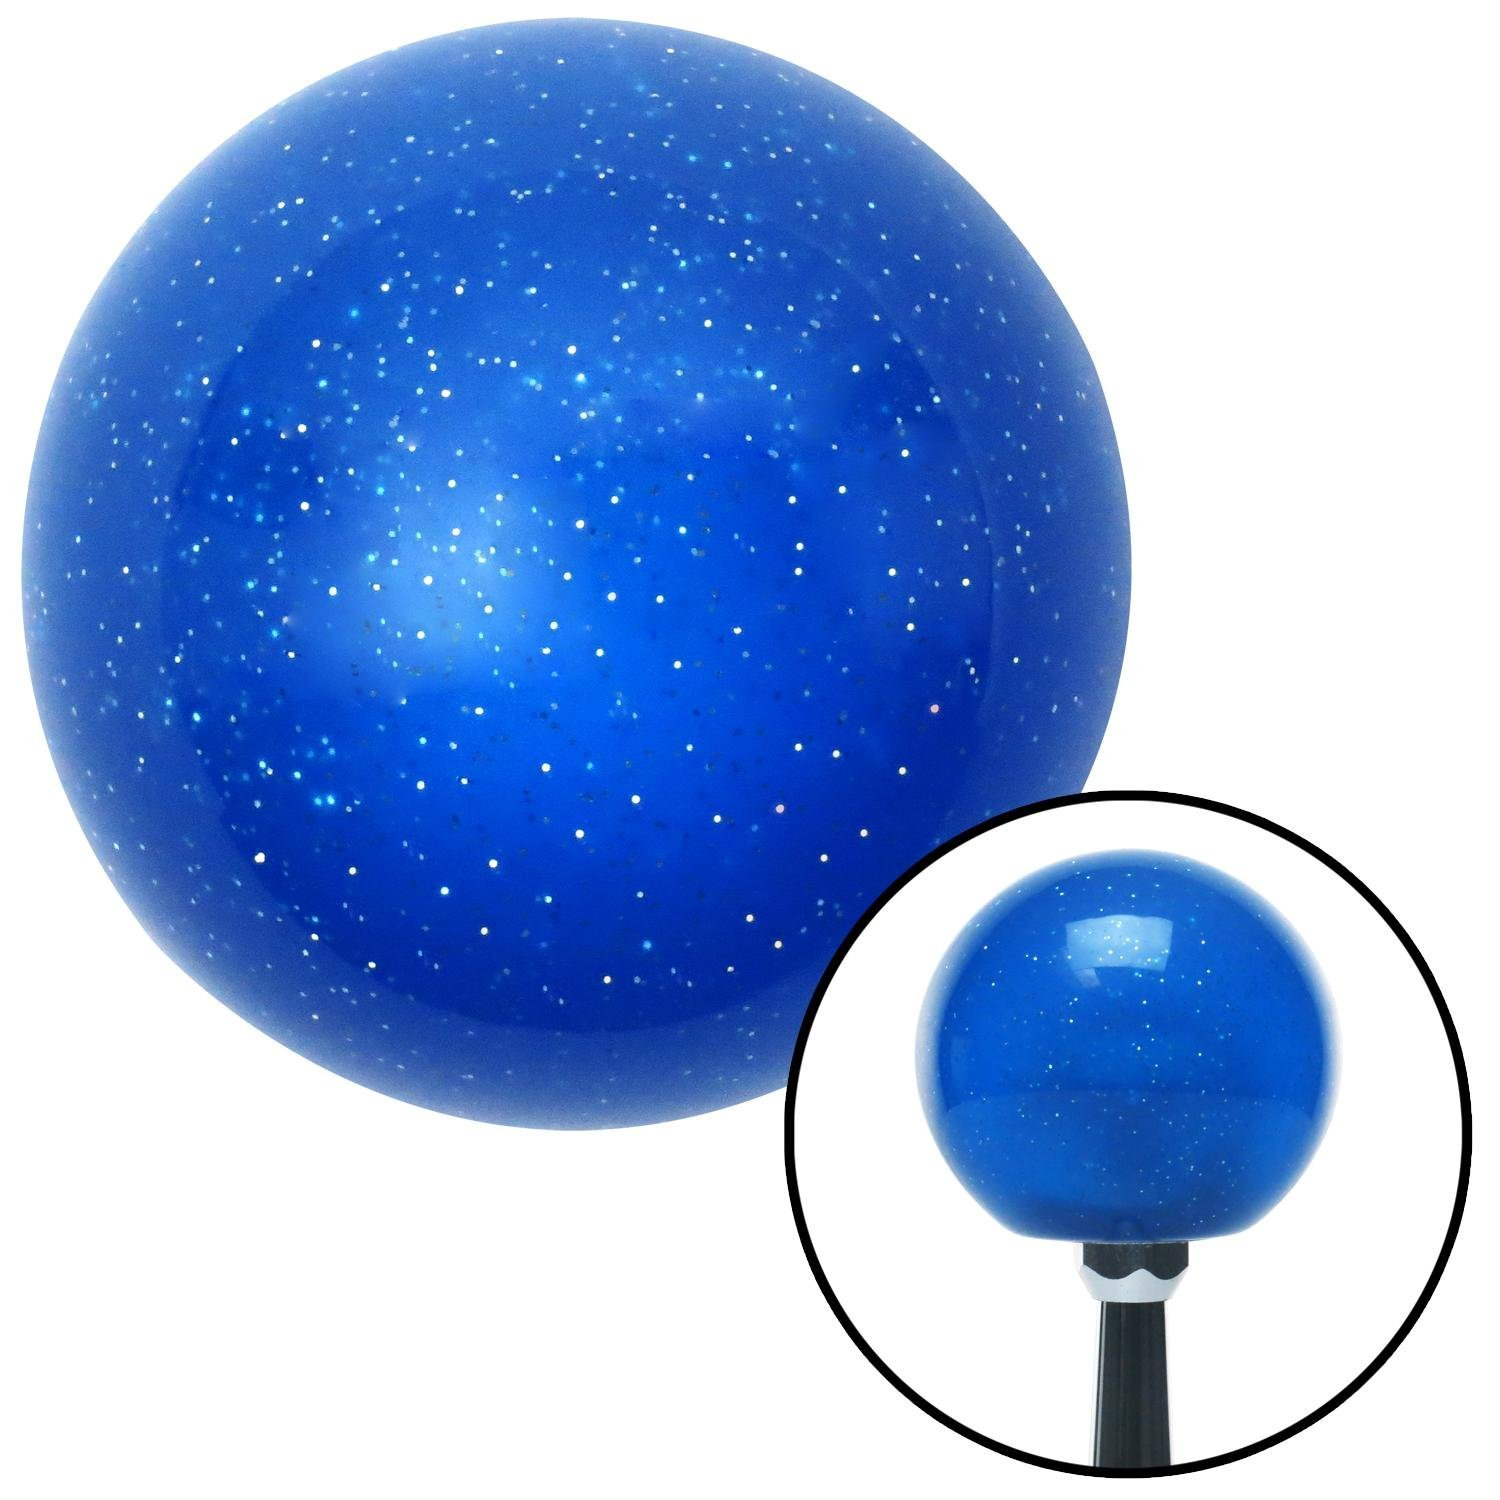 American Shifter 141233 Blue Metal Flake Shift Knob with M16 x 1.5 Insert